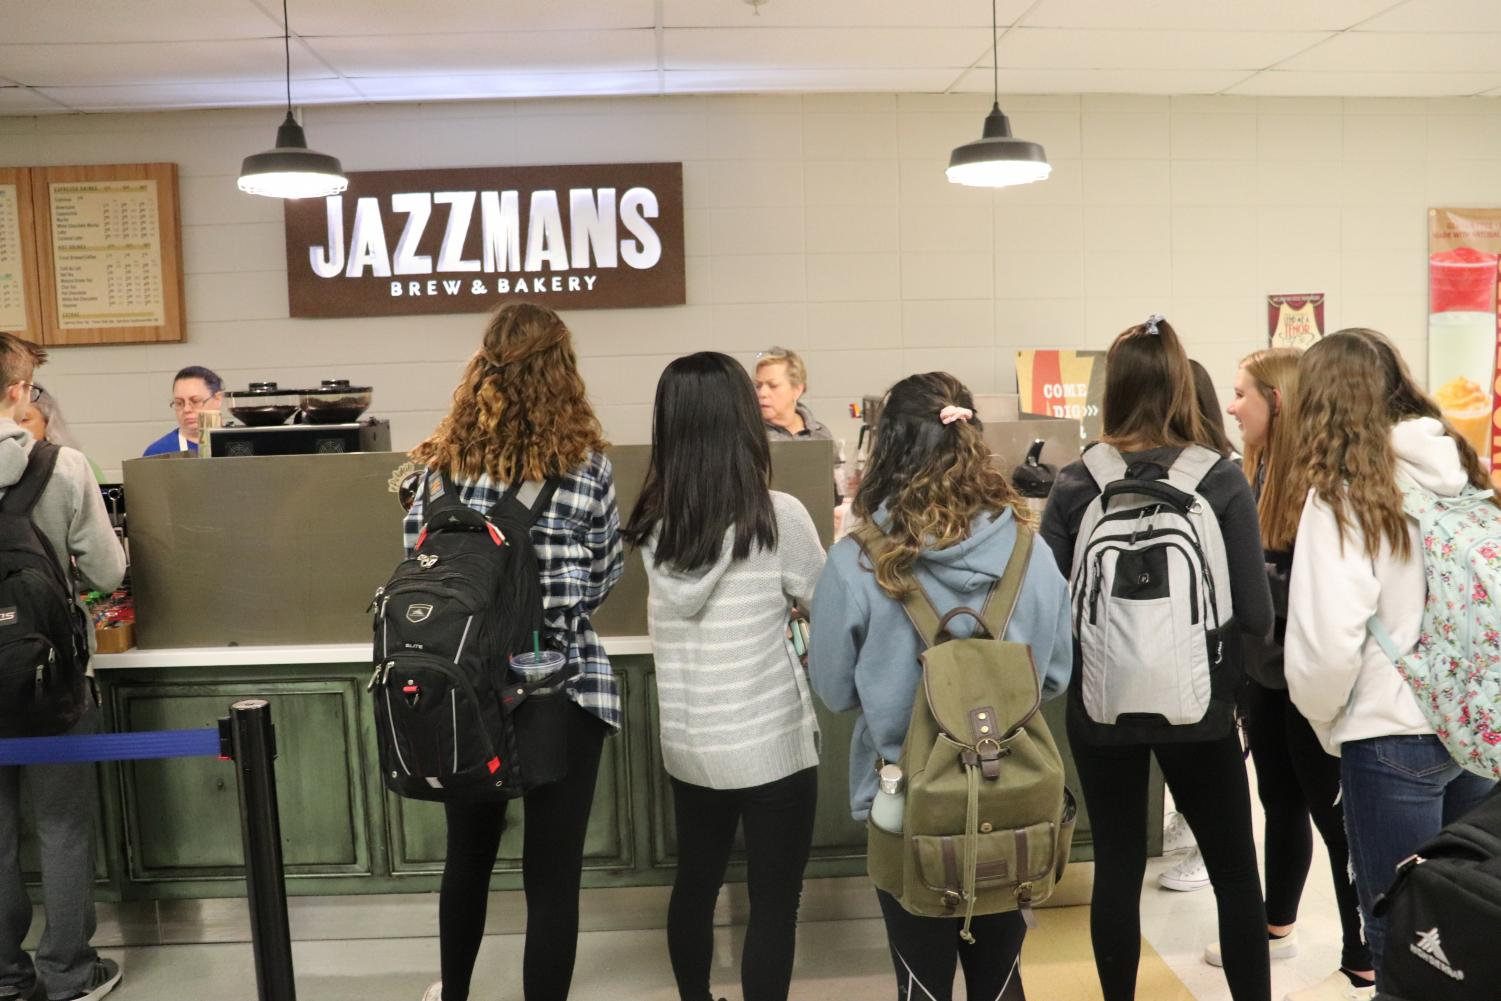 Students wait for their specialized coffee drinks in the morning. Many students say that these complex drink orders can hold up the line and cause irritation among Jazzman's customers.